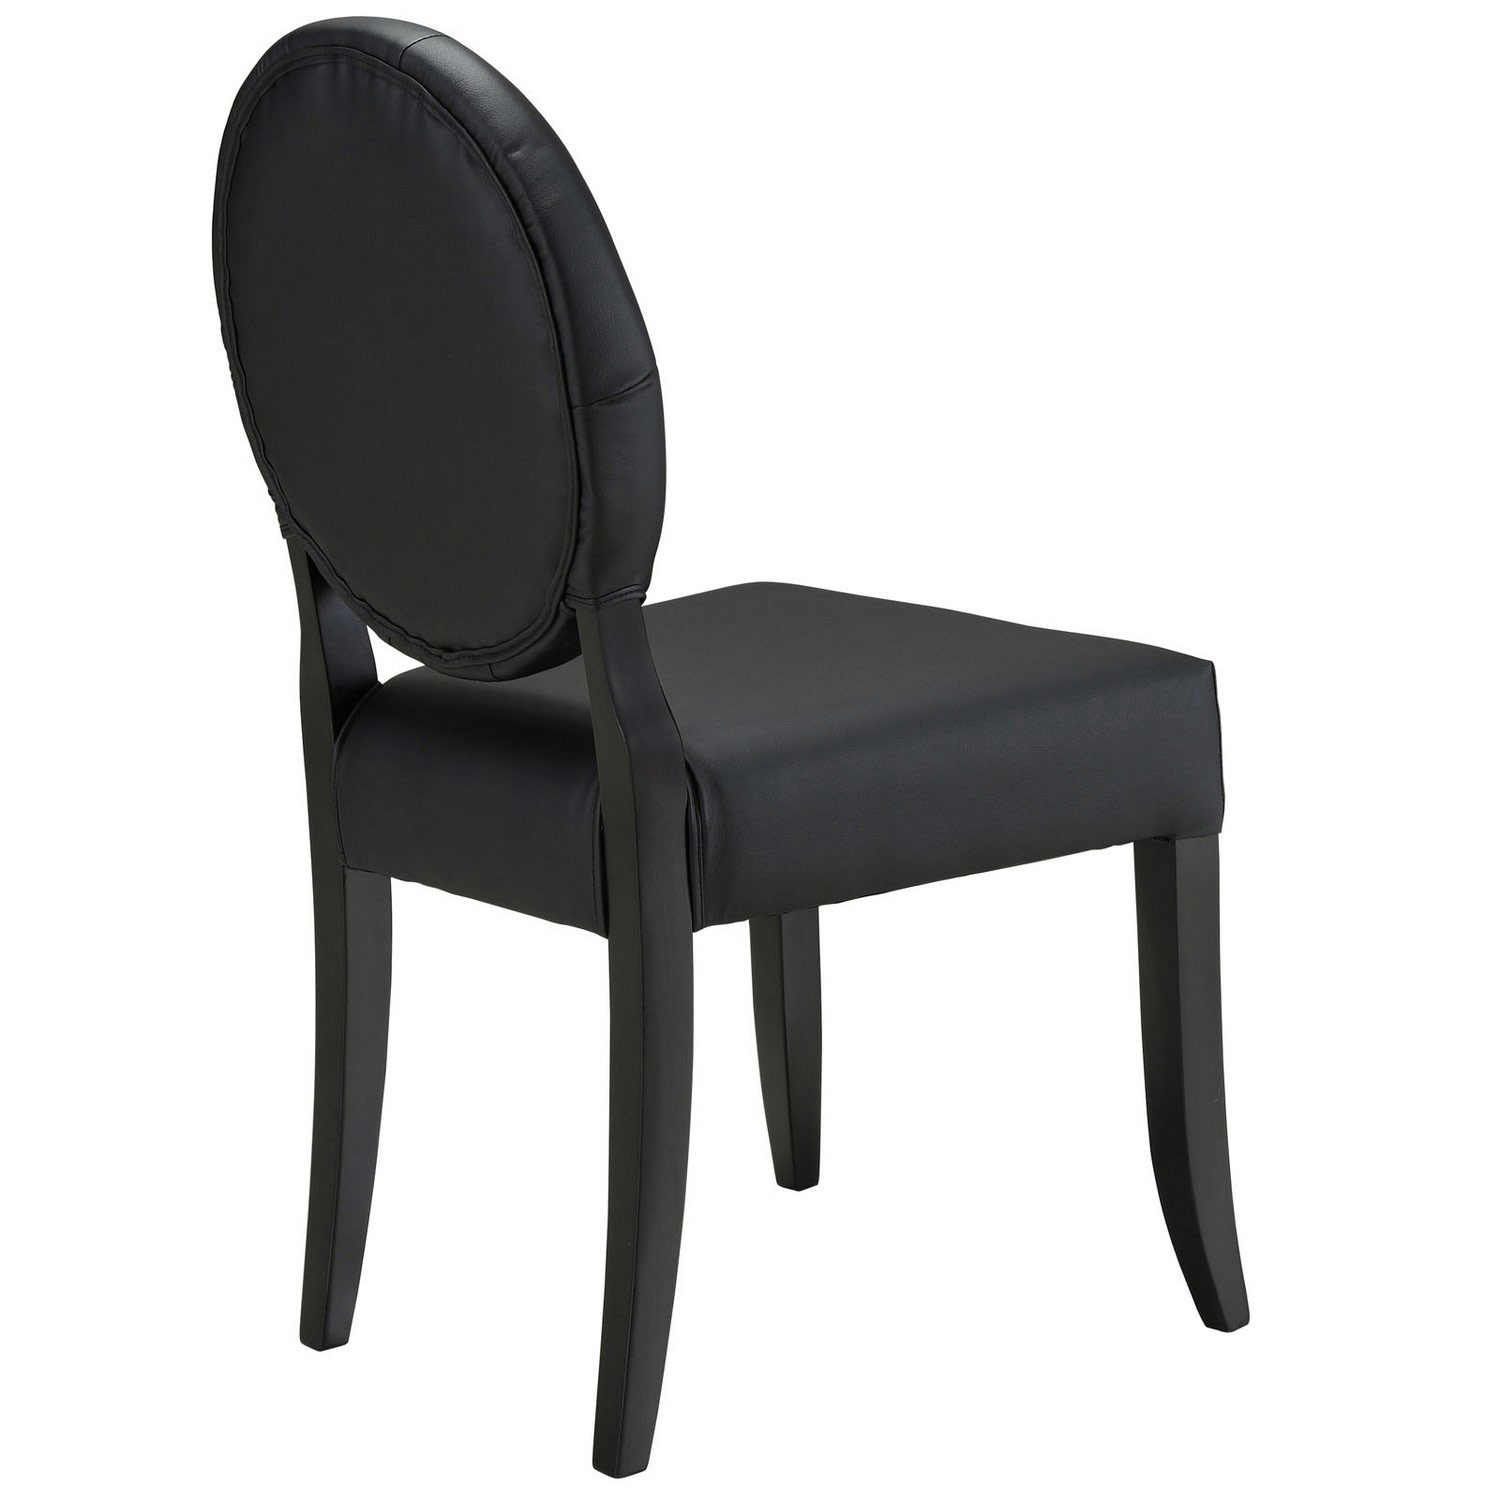 Modway Button Dining Side Chair Set of 2 - Black